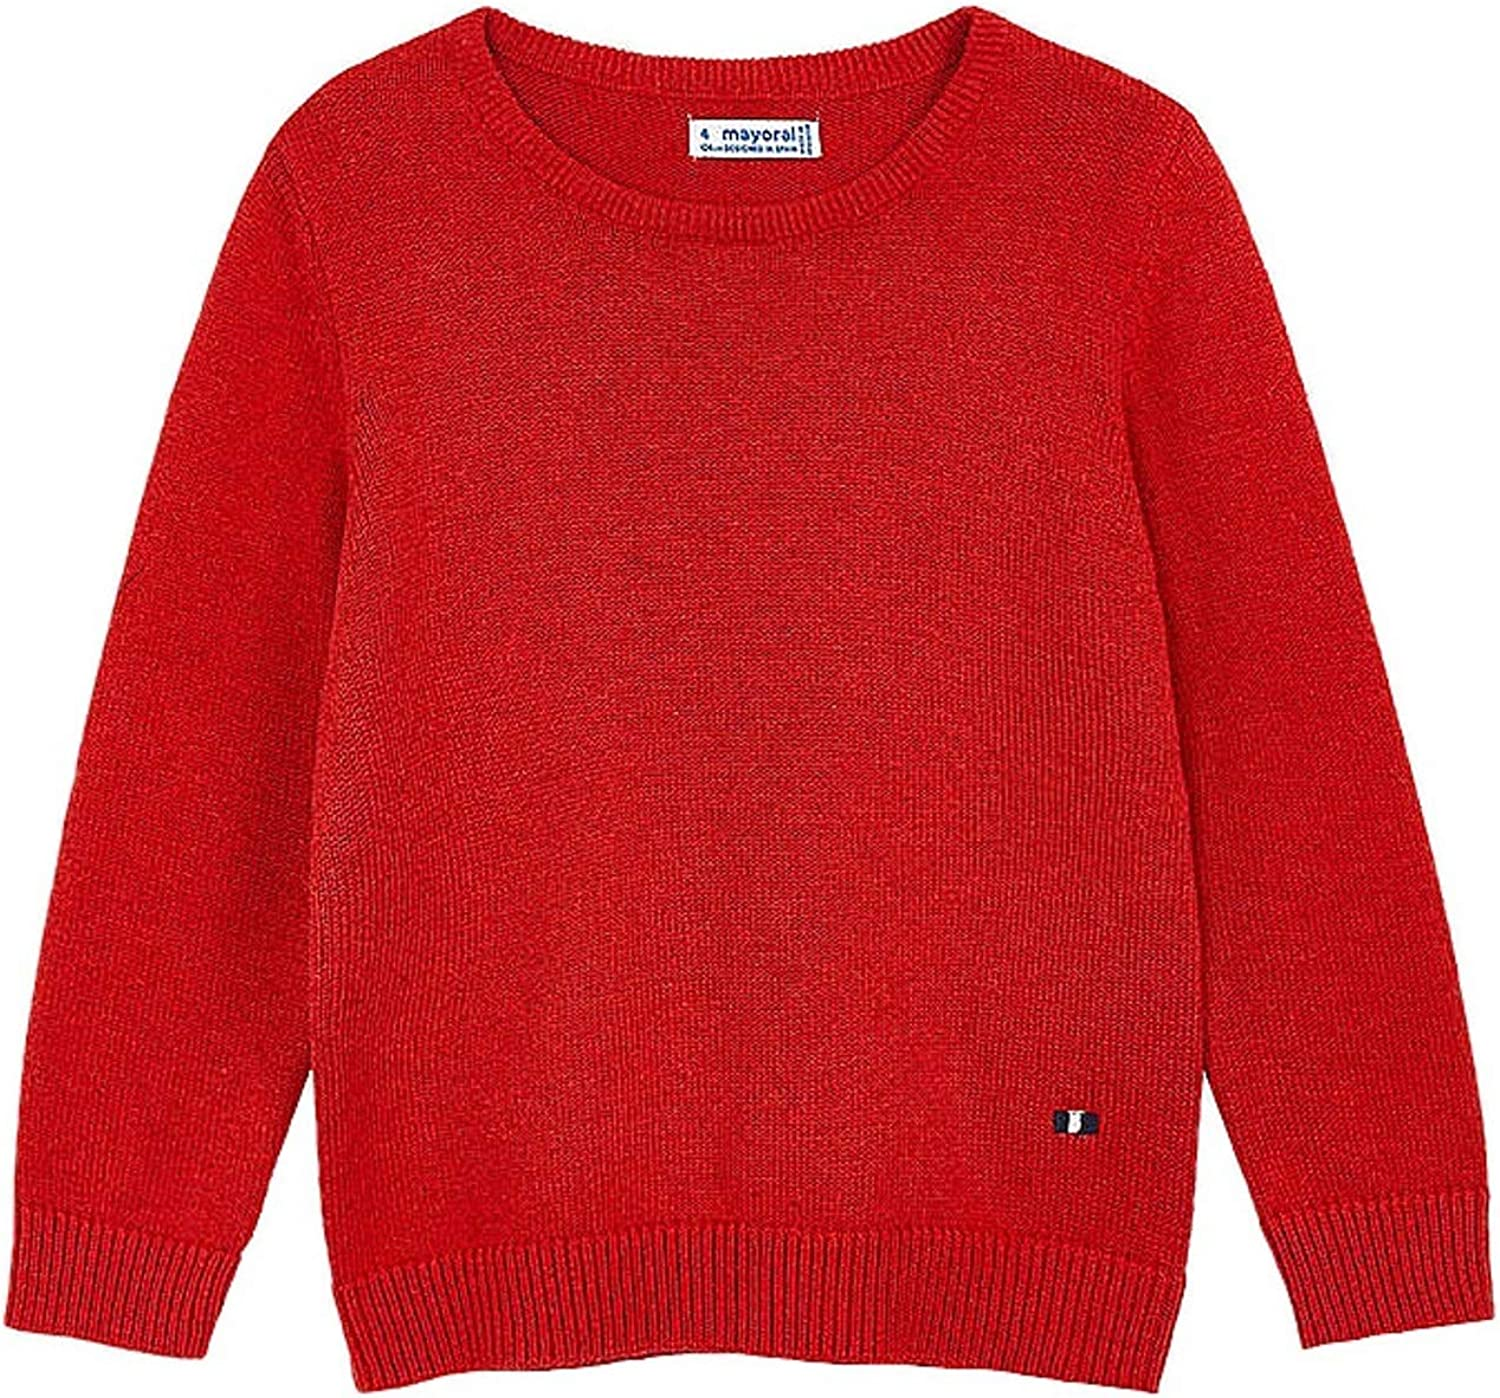 Year-end gift Mayoral - Basic Crew Neck Max 40% OFF Sweater for 0311 vig Boys Flame